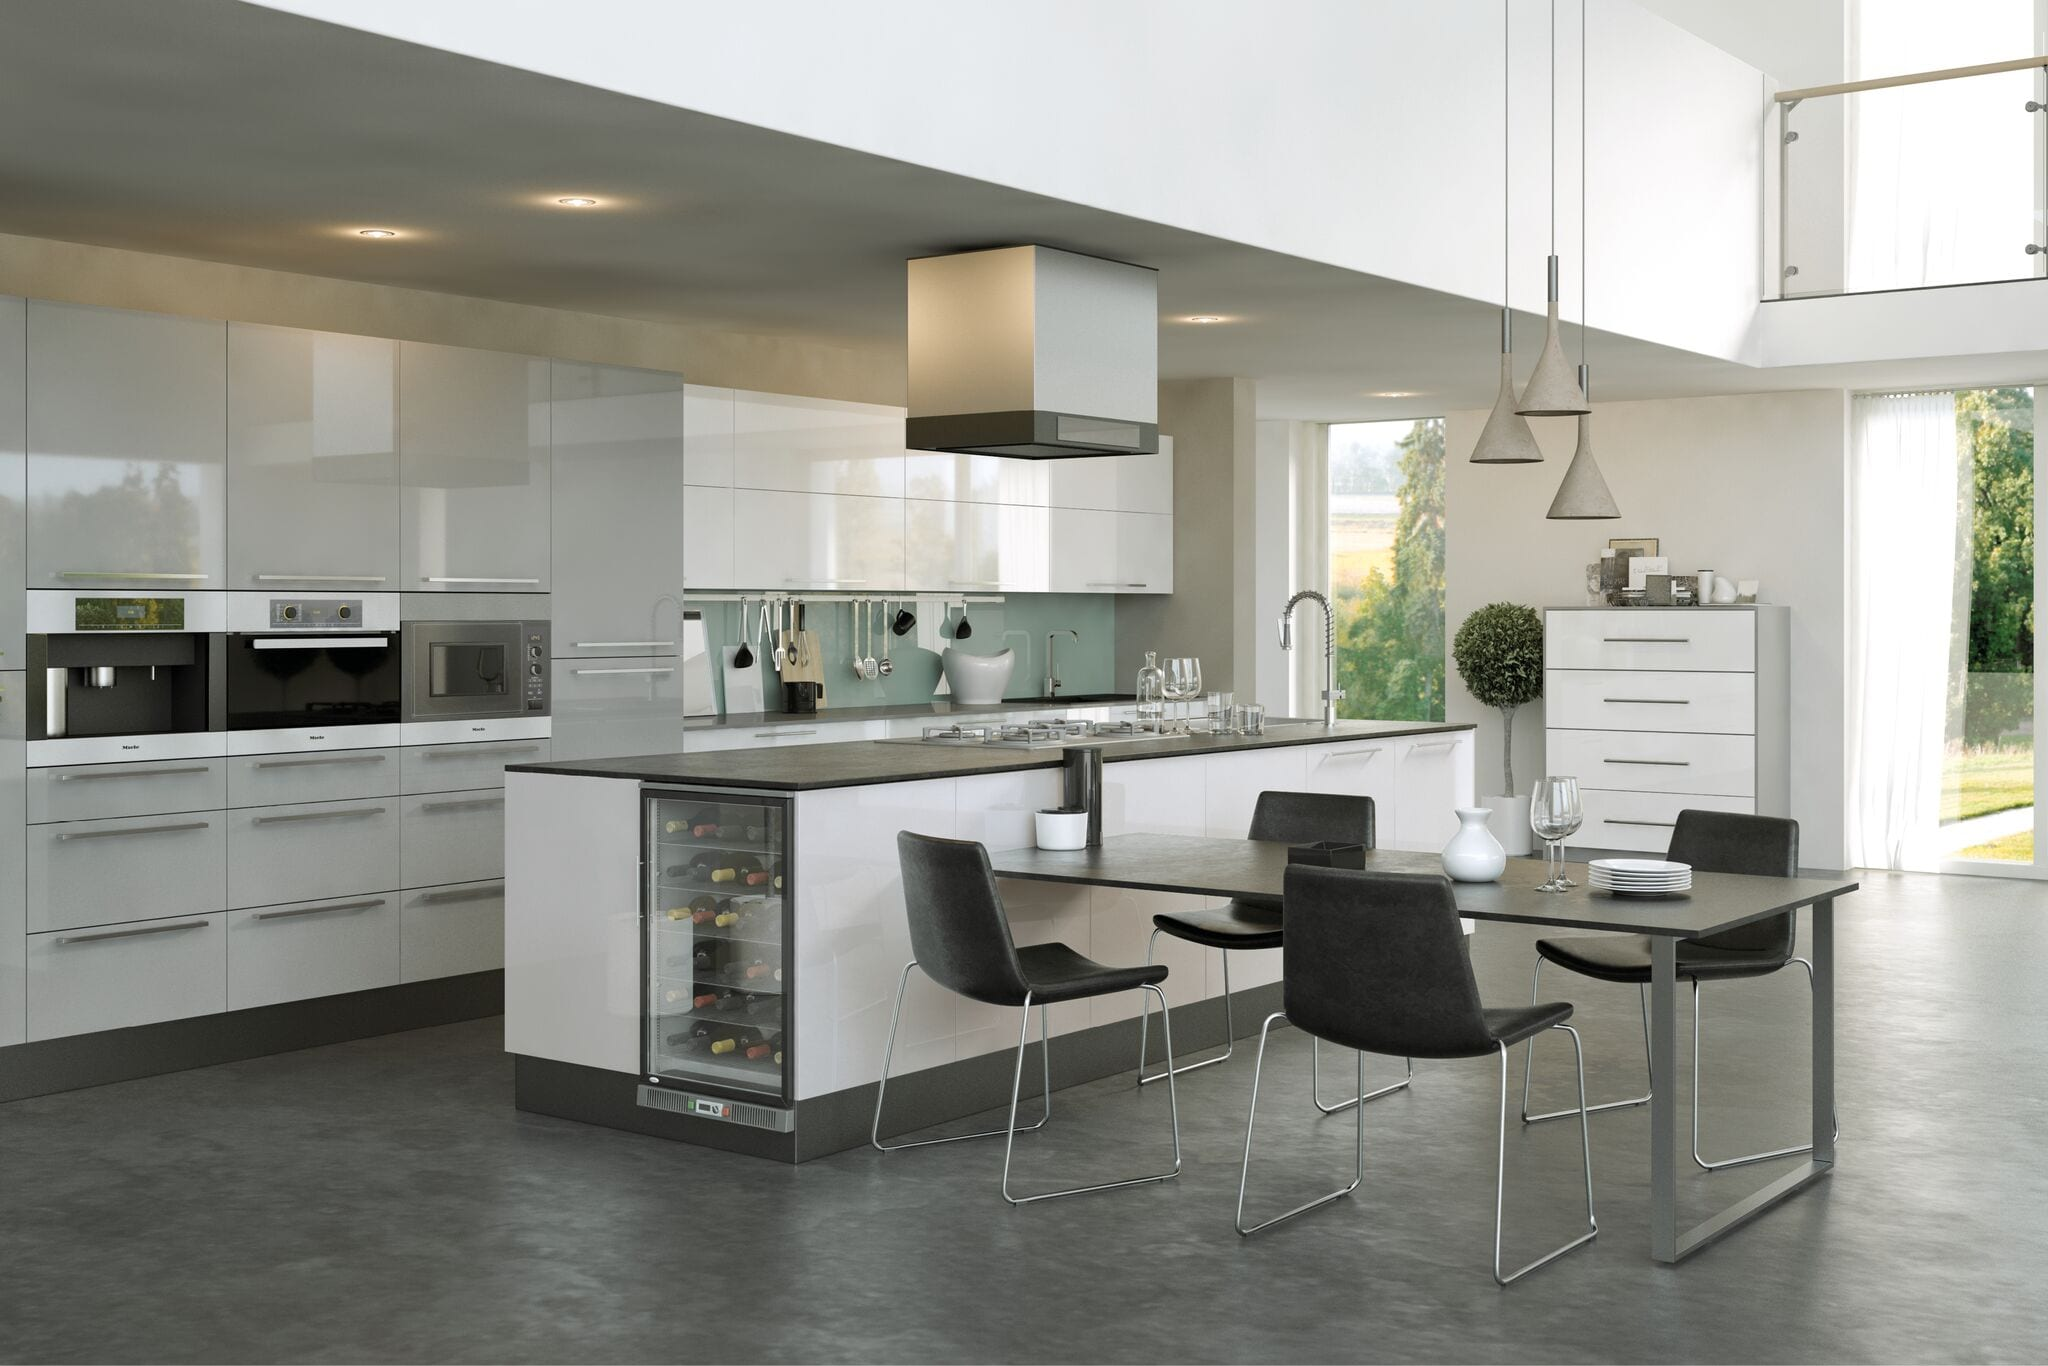 Firbeck flat panel kitchen in light grey